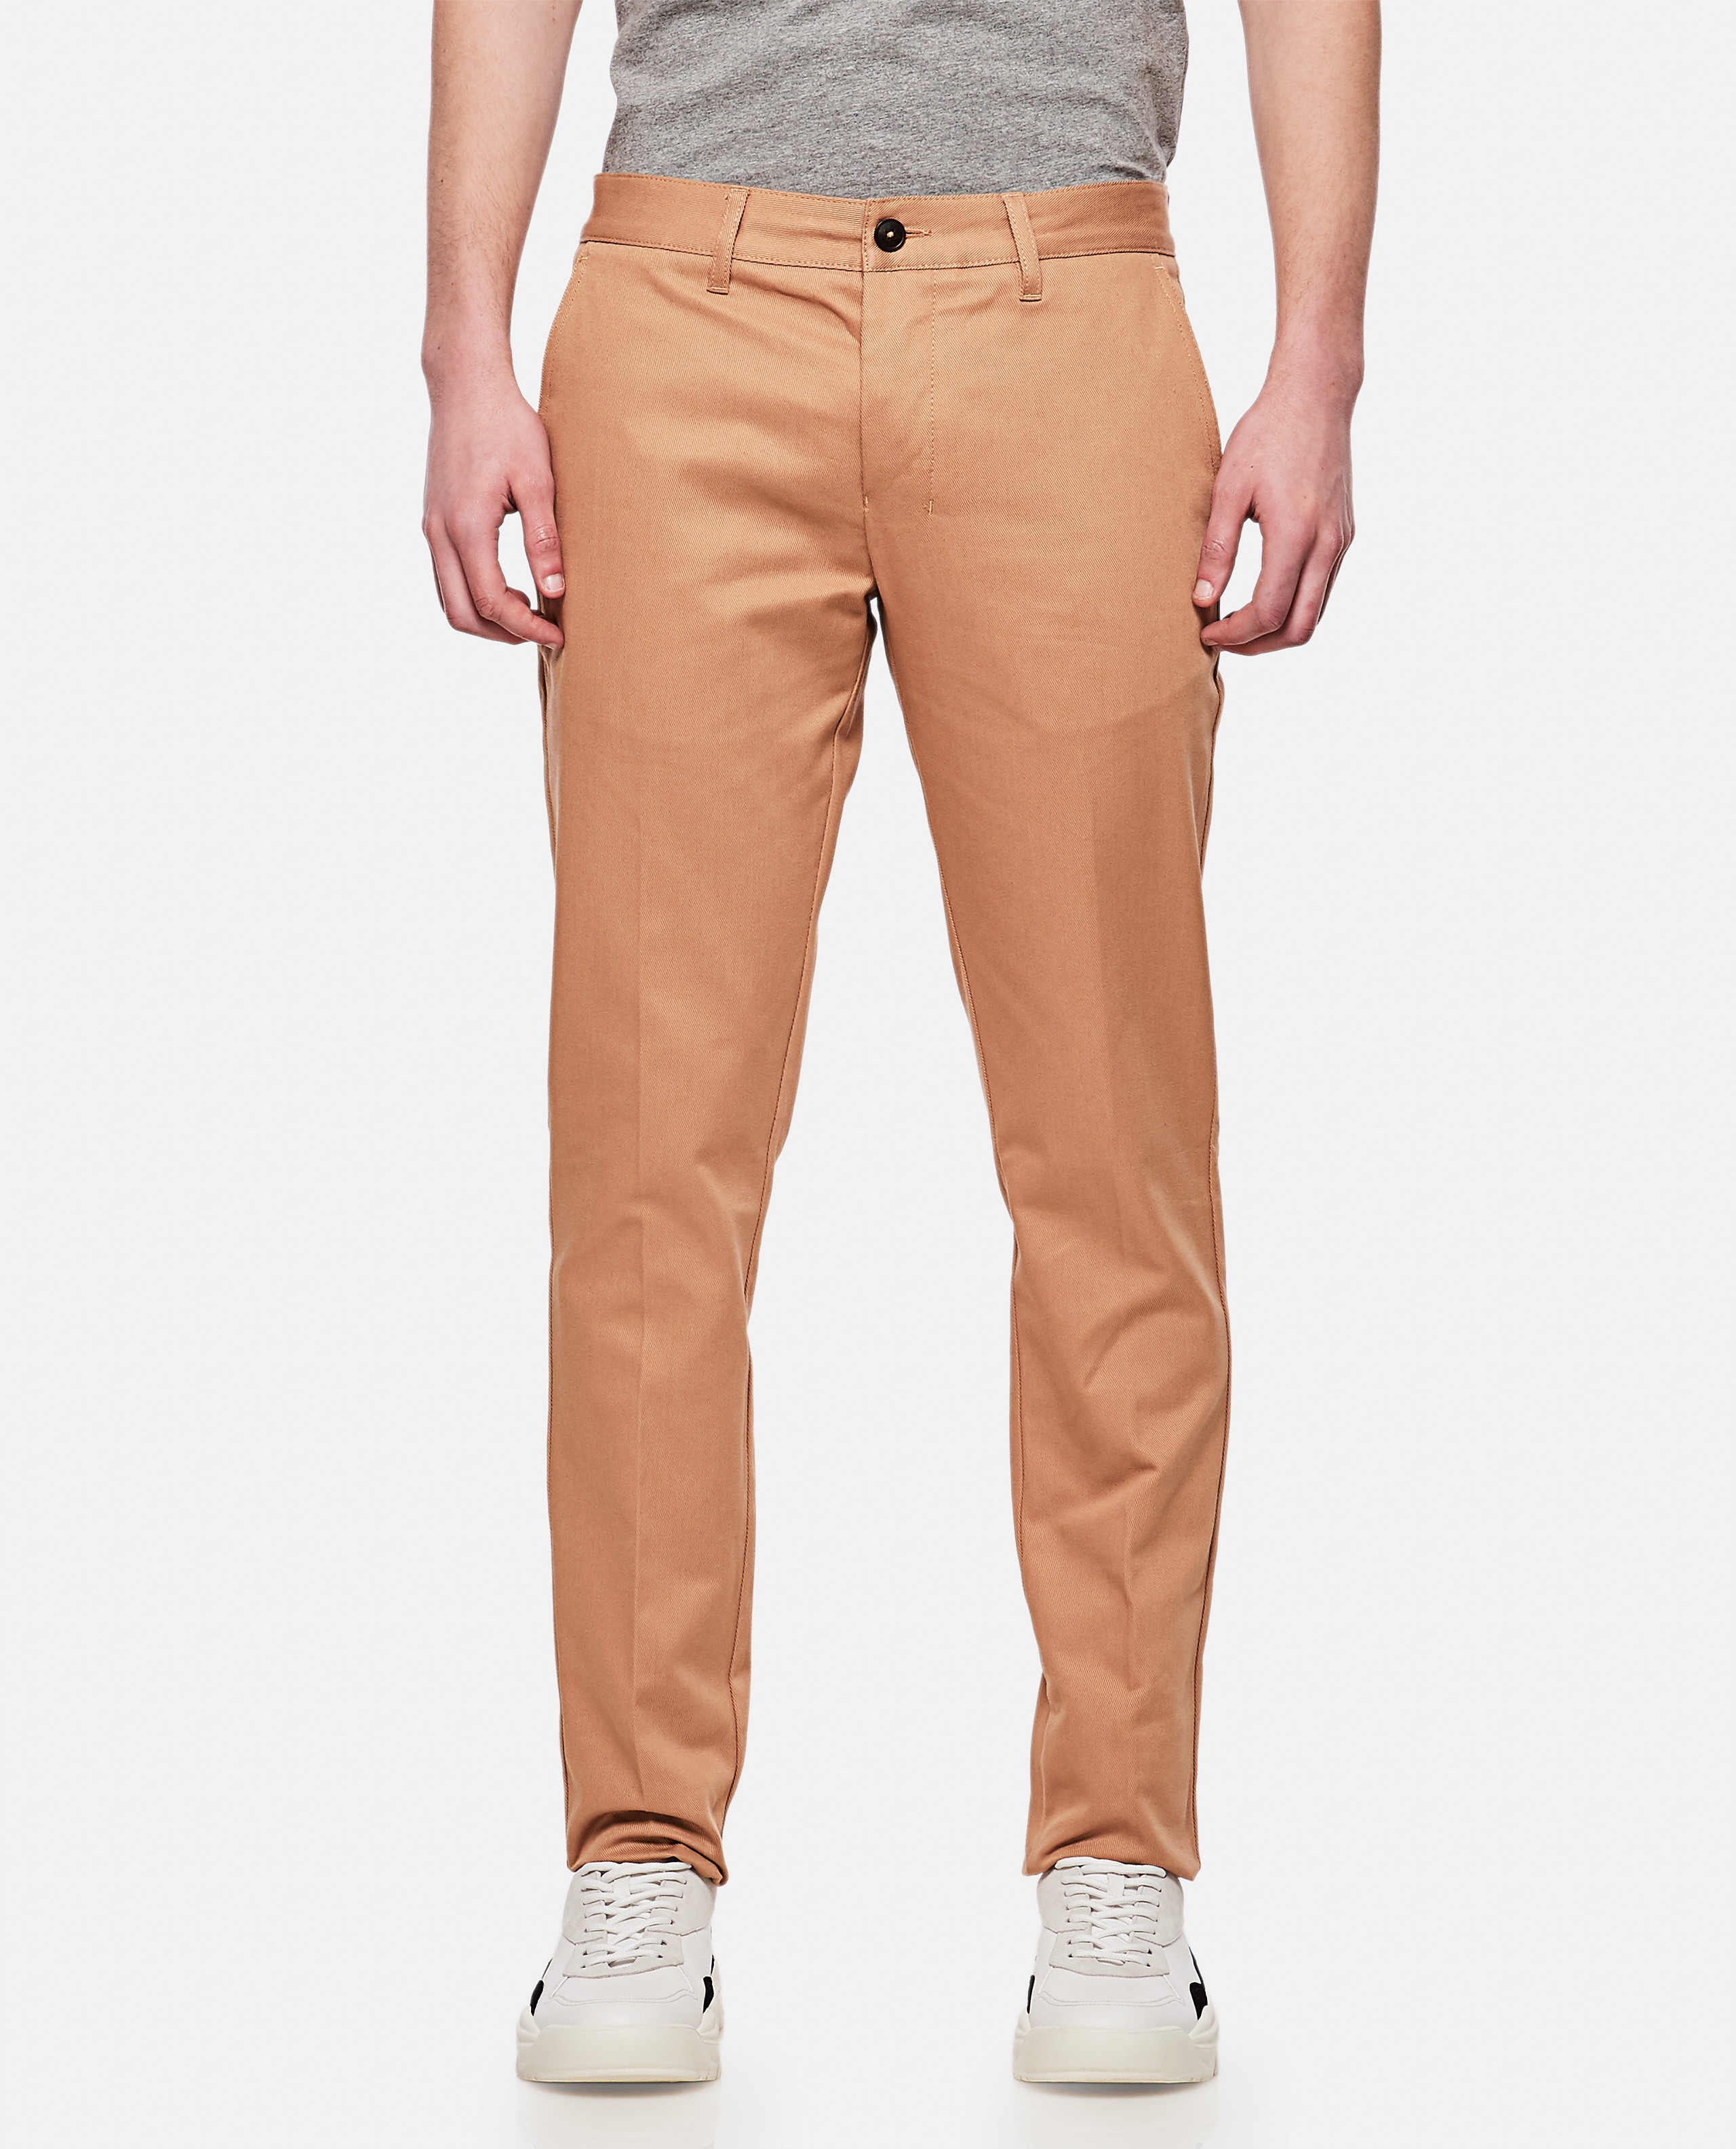 Chino trousers Uomo AMI Paris 000291370042907 1